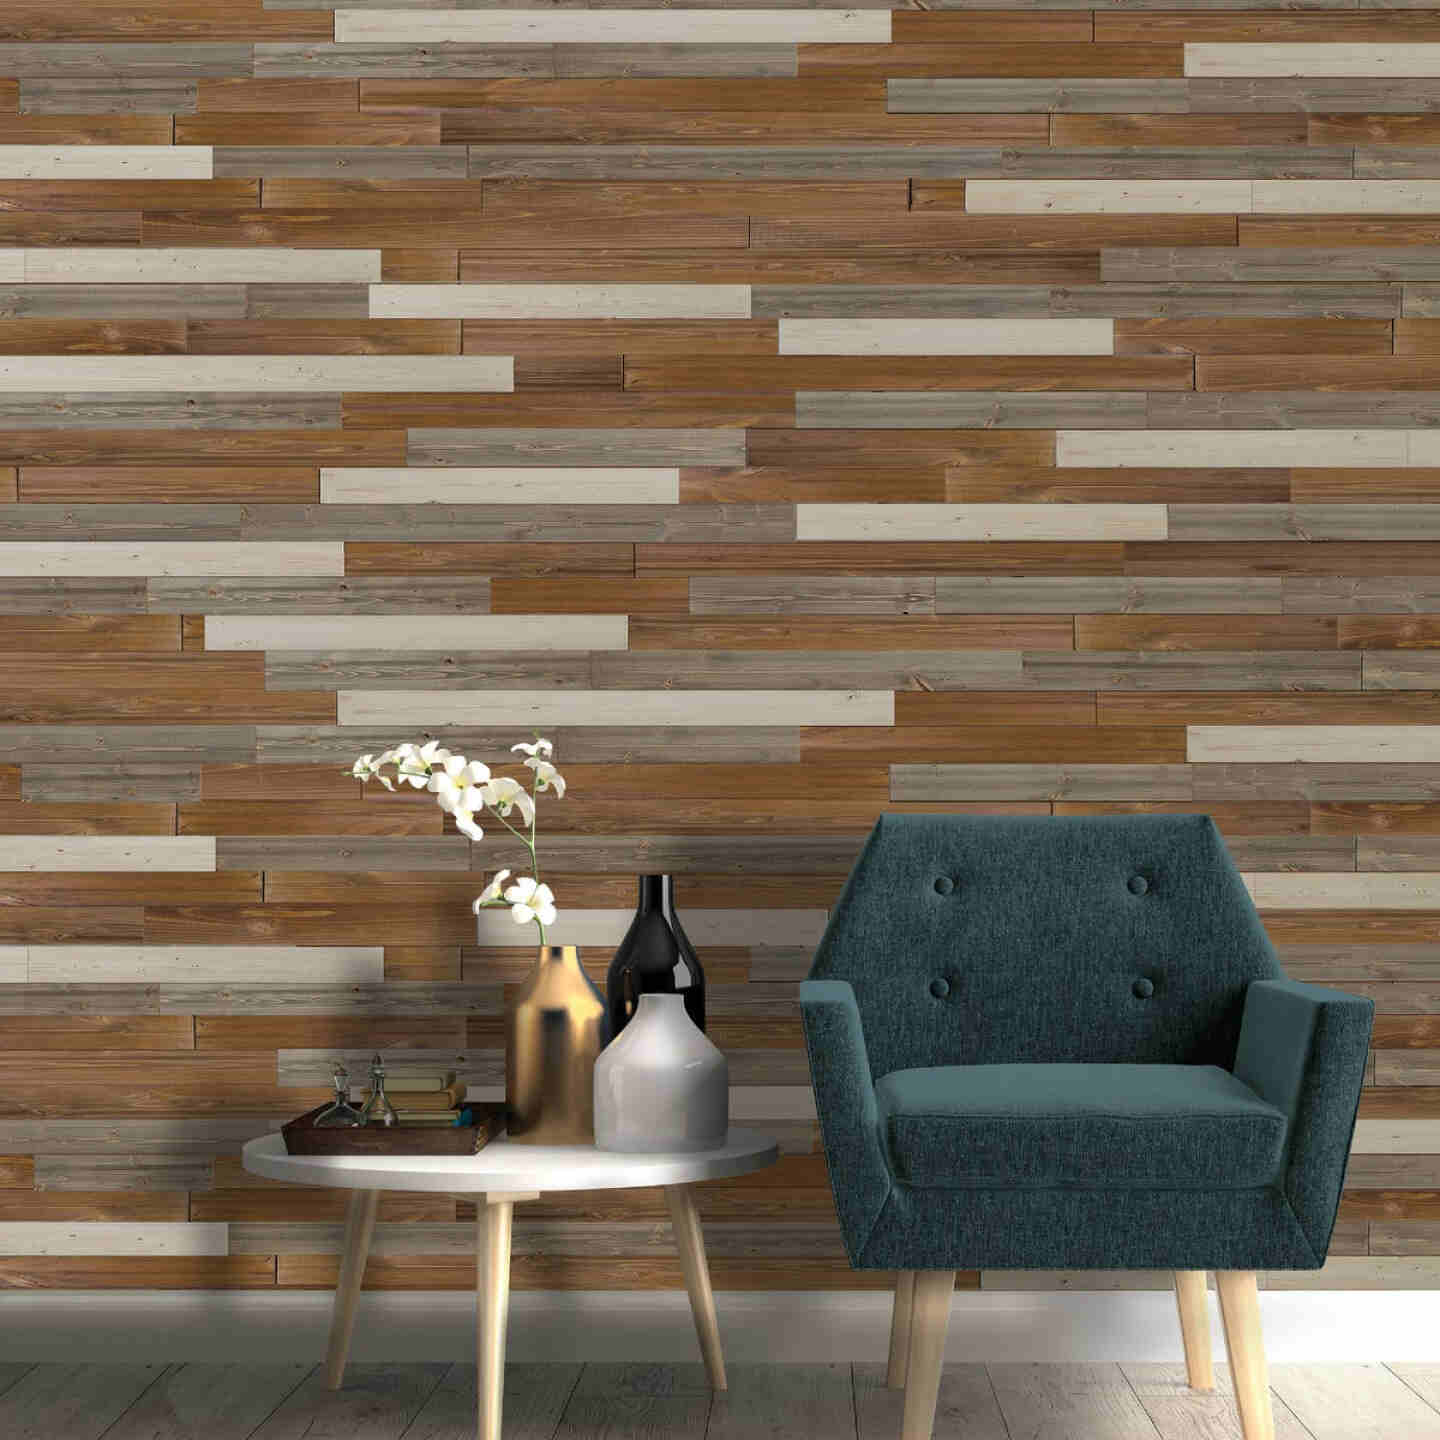 Global Product Sourcing 3-1/2 In. W. x 1/4 In. Thick Solid Wood Gray Reclaimed Wood Wall Plank Image 3